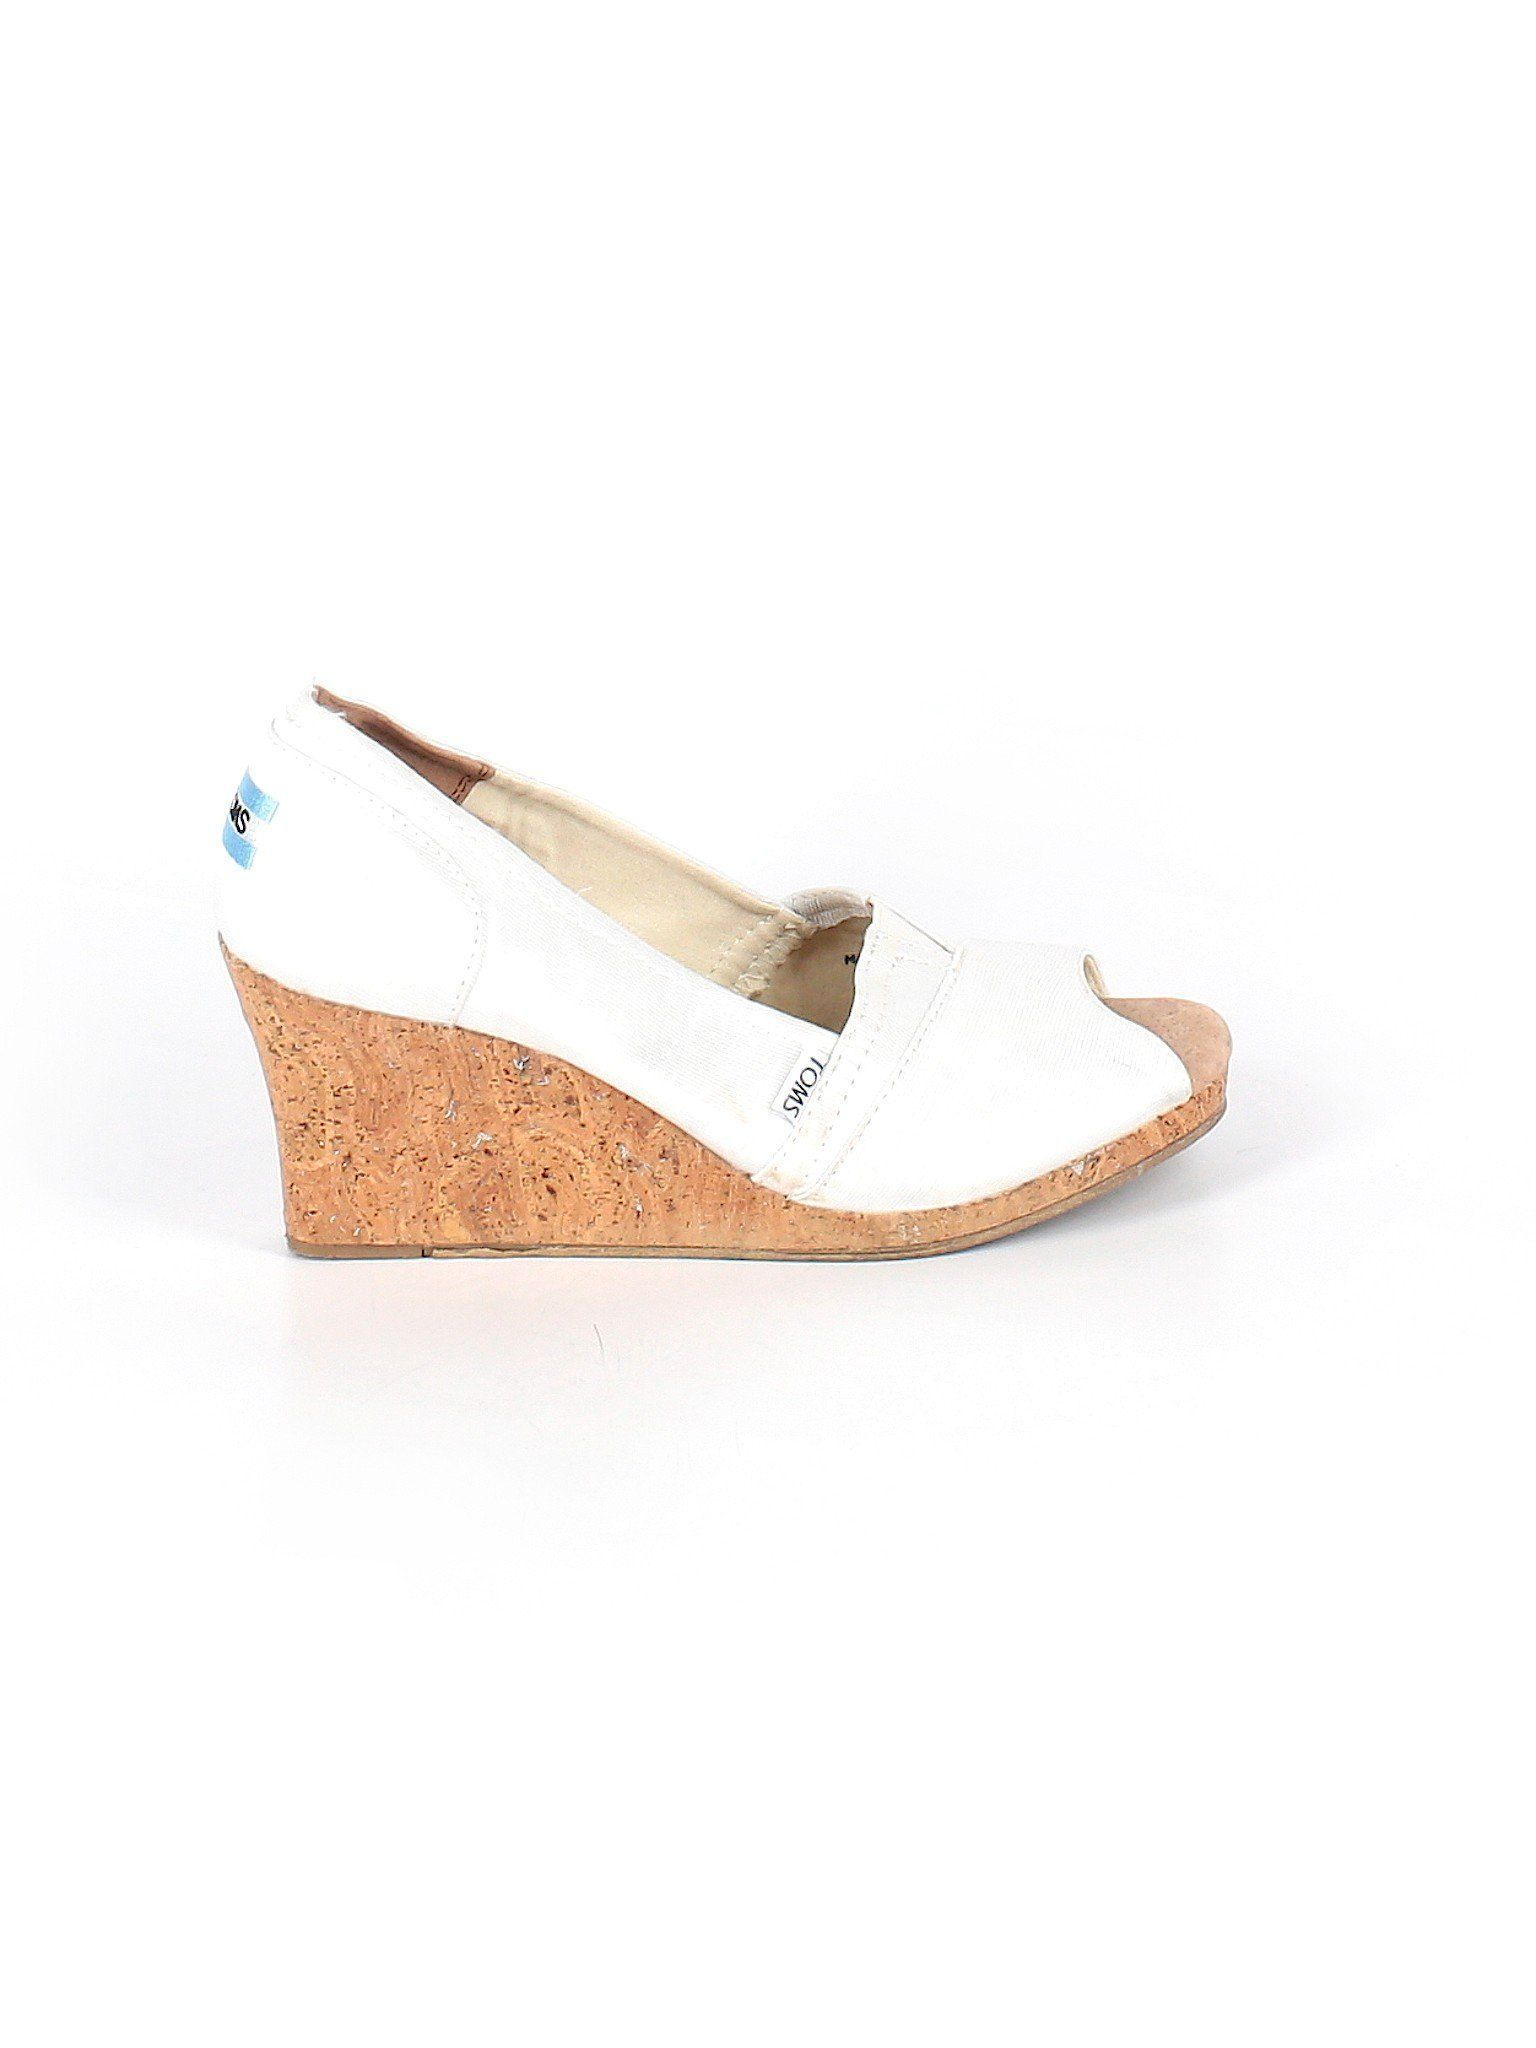 TOMS Wedge: Gray Solid Women's Shoes - Size 12 #tomwedges TOMS Wedge: Gray Solid Women's Shoes - Size 12 #tomwedges TOMS Wedge: Gray Solid Women's Shoes - Size 12 #tomwedges TOMS Wedge: Gray Solid Women's Shoes - Size 12 #tomwedges TOMS Wedge: Gray Solid Women's Shoes - Size 12 #tomwedges TOMS Wedge: Gray Solid Women's Shoes - Size 12 #tomwedges TOMS Wedge: Gray Solid Women's Shoes - Size 12 #tomwedges TOMS Wedge: Gray Solid Women's Shoes - Size 12 #tomwedges